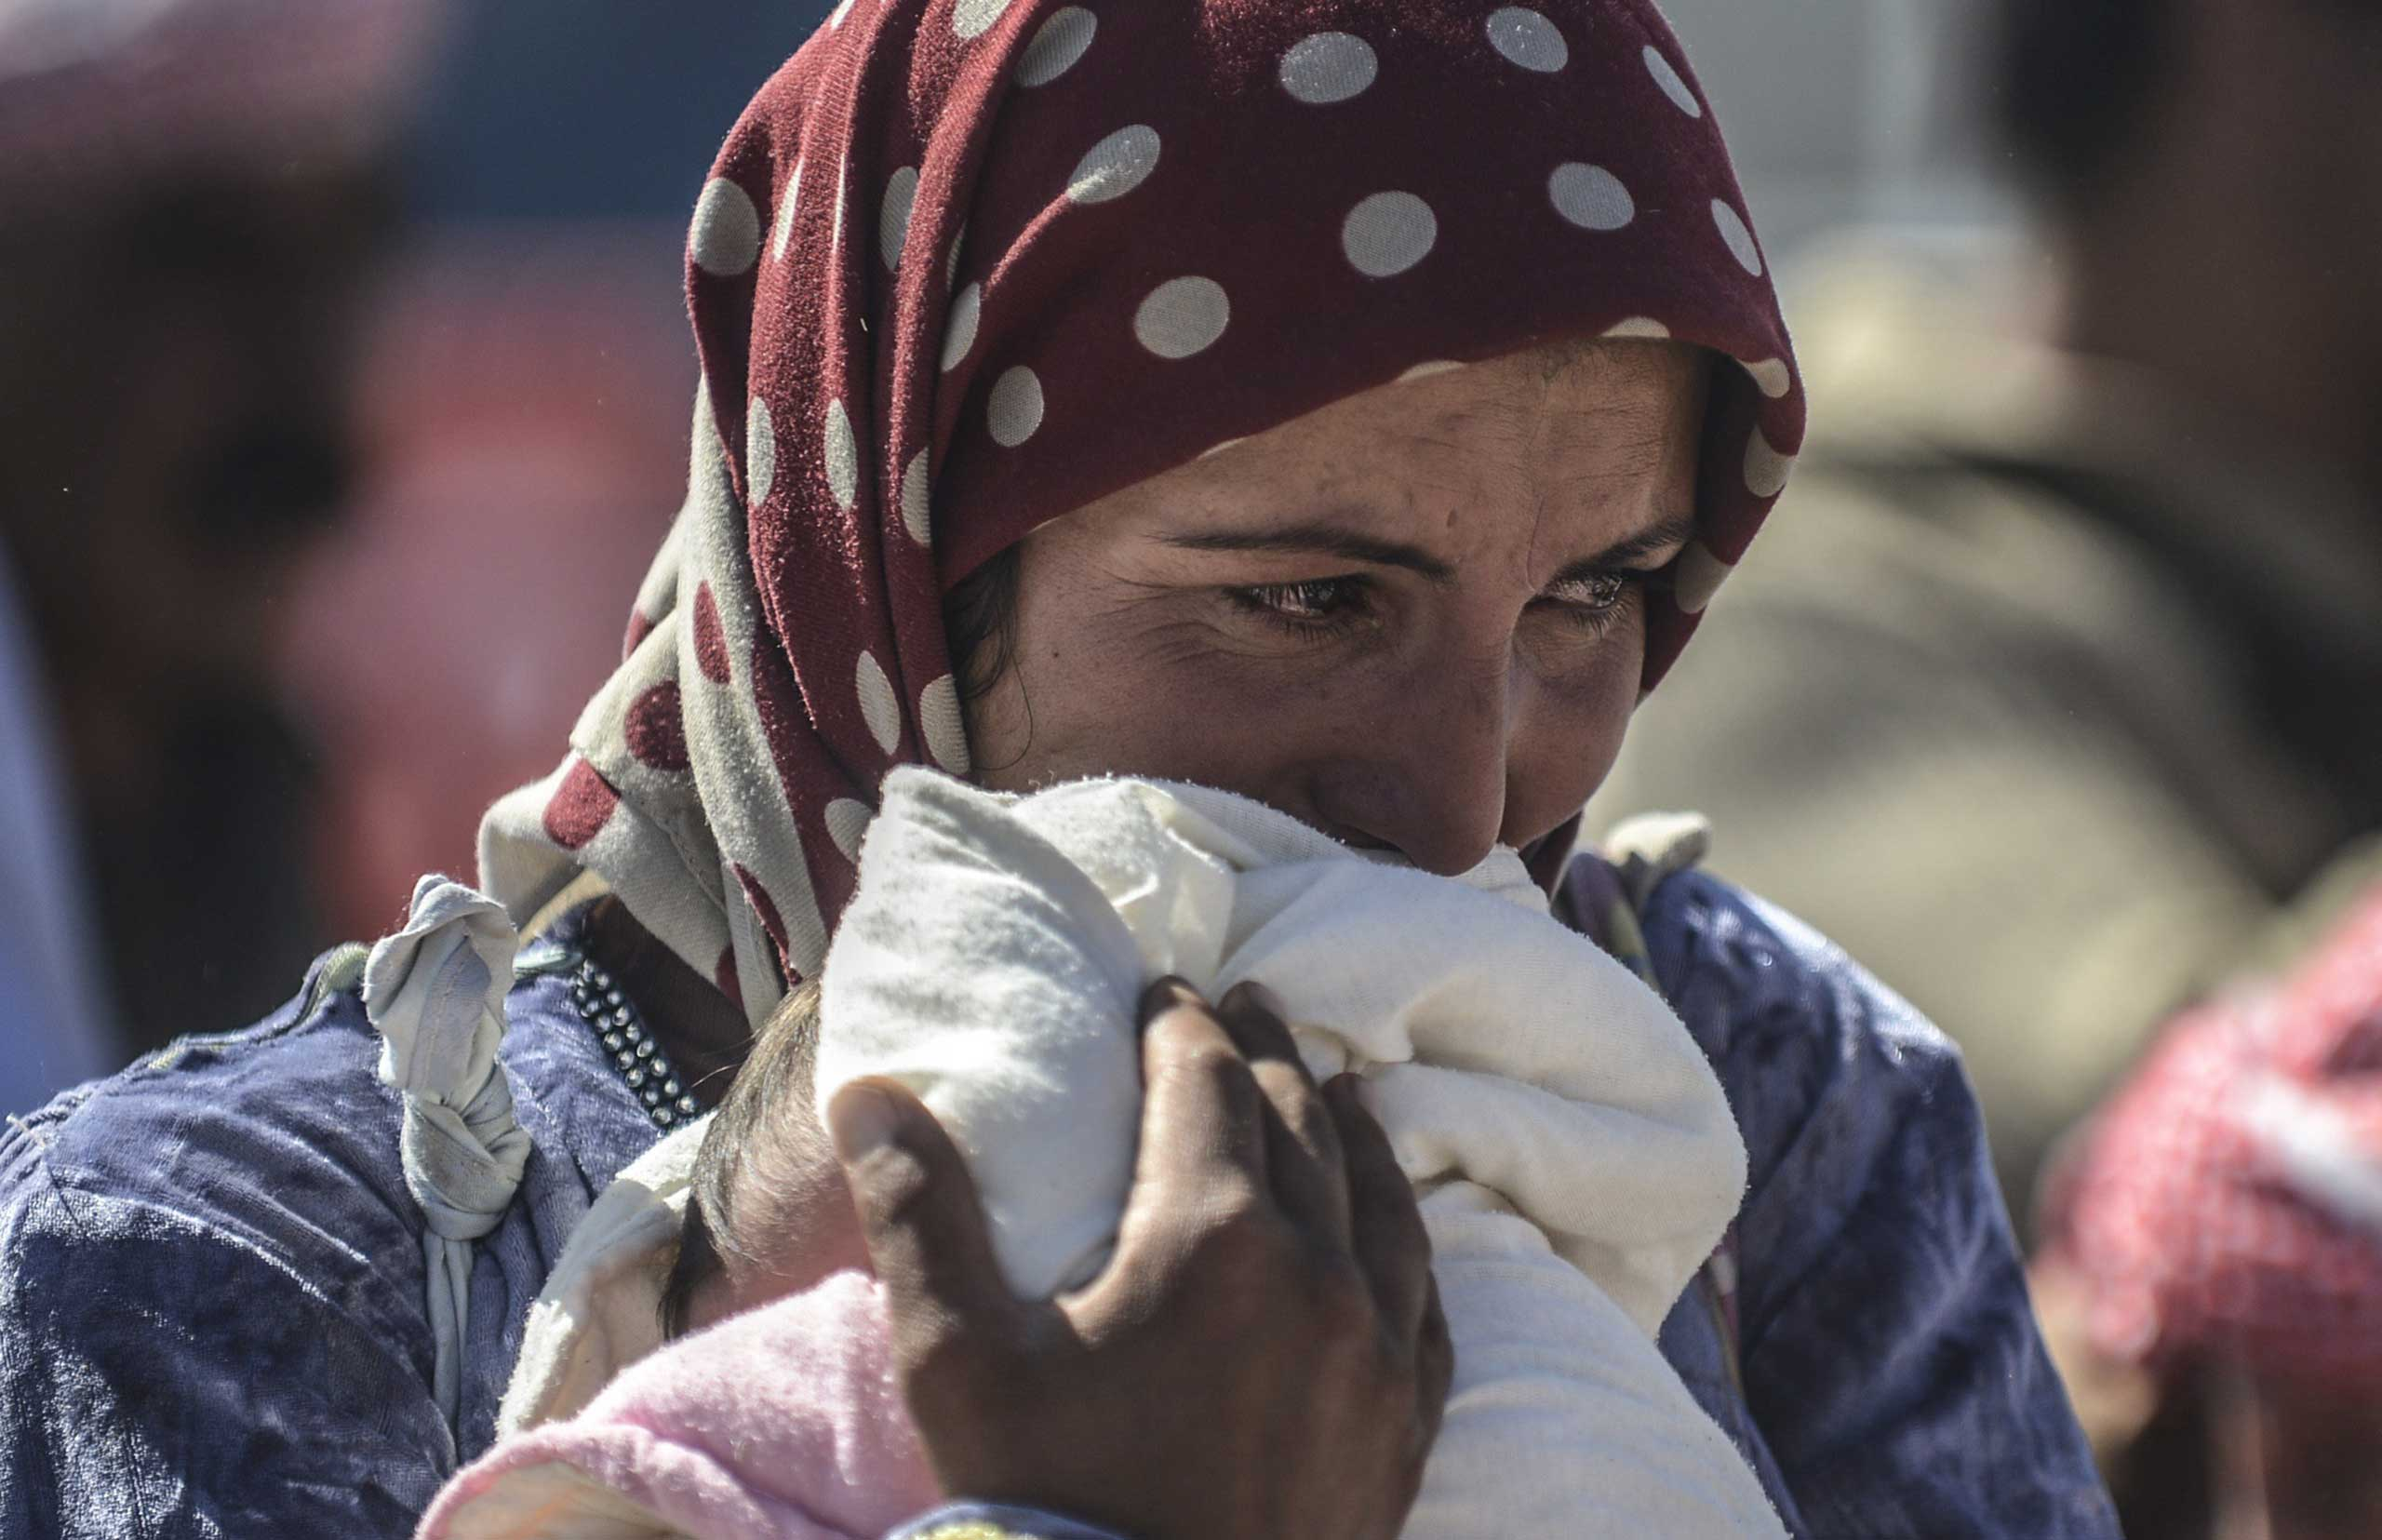 Oct. 1, 2014.                               A Syrian Kurdish woman cries as she holds her baby in the southeastern town of Suruc in the Sanliurfa province after crossing the border between Syria and Turkey. Tens of thousands of Syrian Kurds flooded into Turkey fleeing an onslaught by the Islamic State (IS) group that prompted an appeal for international intervention.